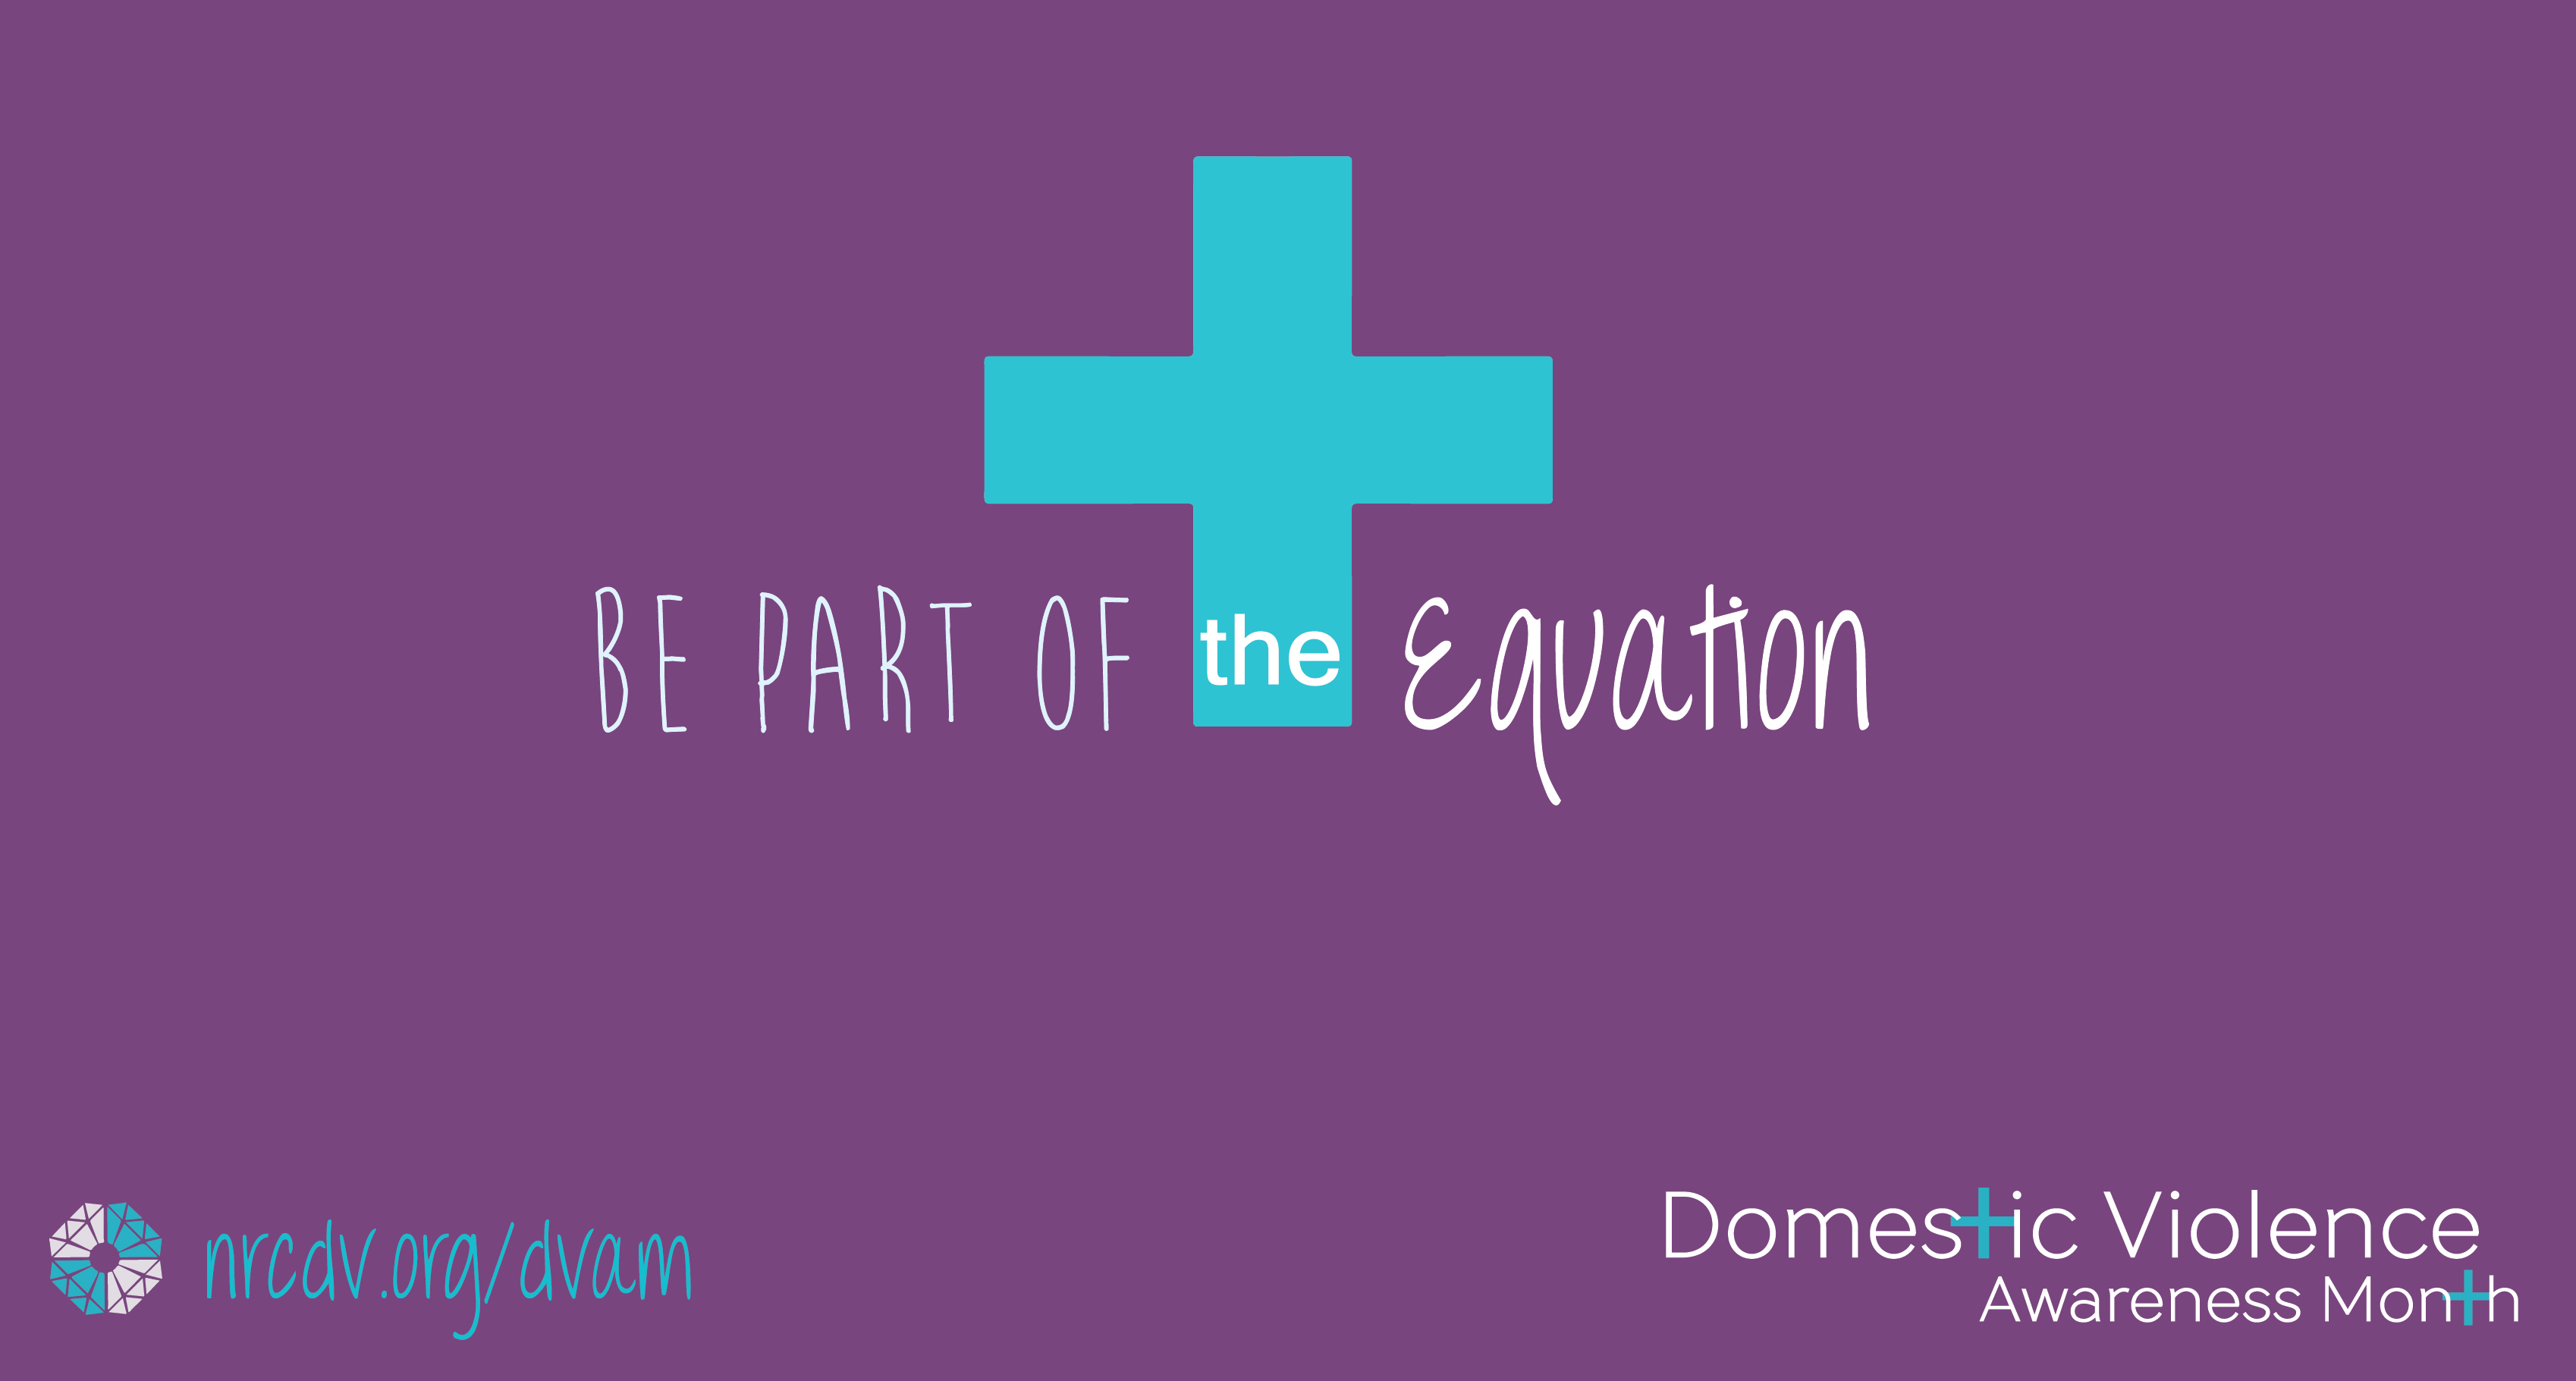 dvam banner. purple bkgd blue logo white text: be part of the equasion